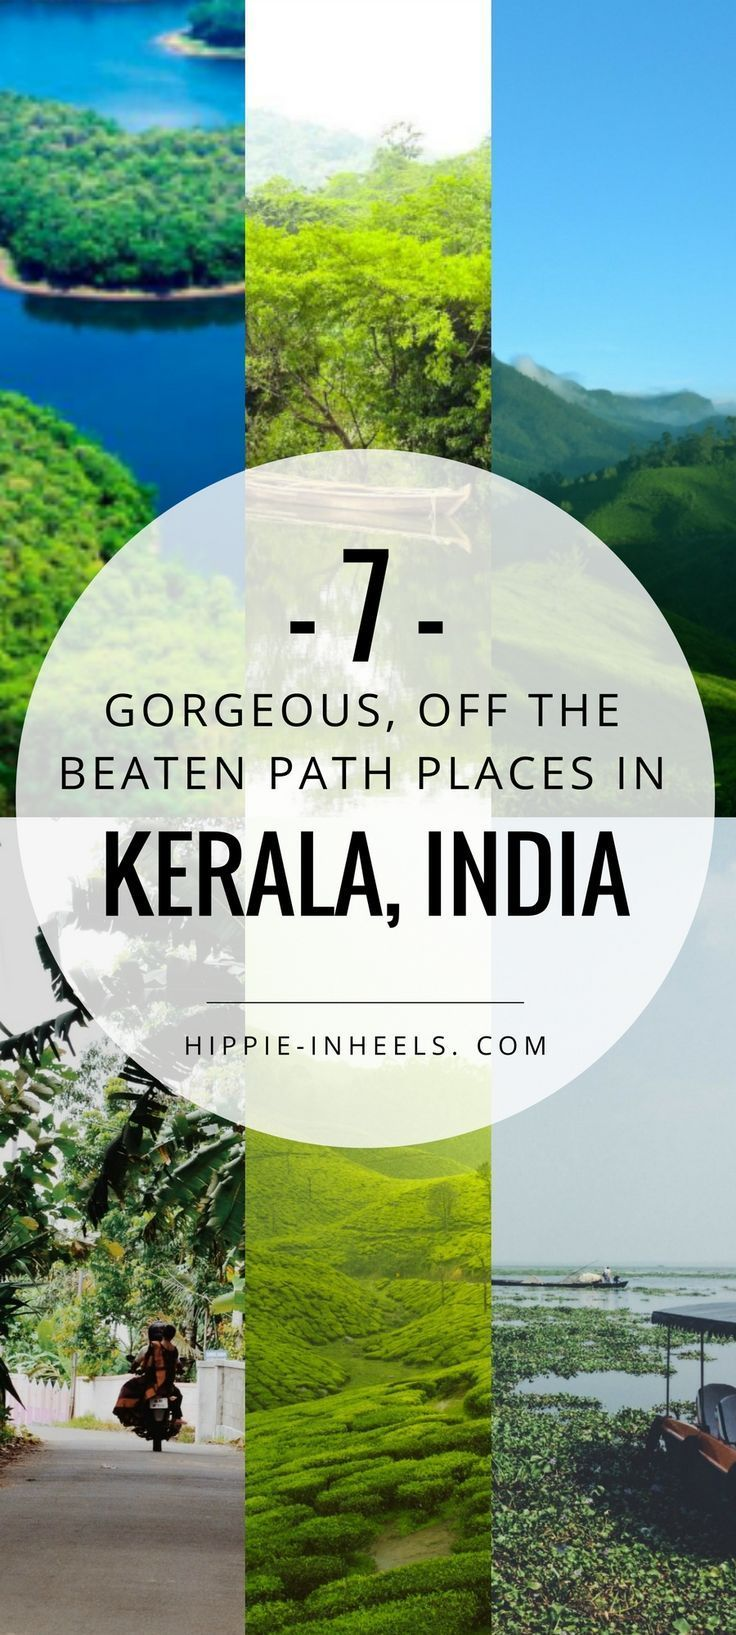 7 Offbeat Travel Destinations to Visit in Kerala That Will Blow Your Mind Only a local would know about these 7 offbeat travel destinations to visit in Kerala, and we think you're going to be booking a trip after reading this!